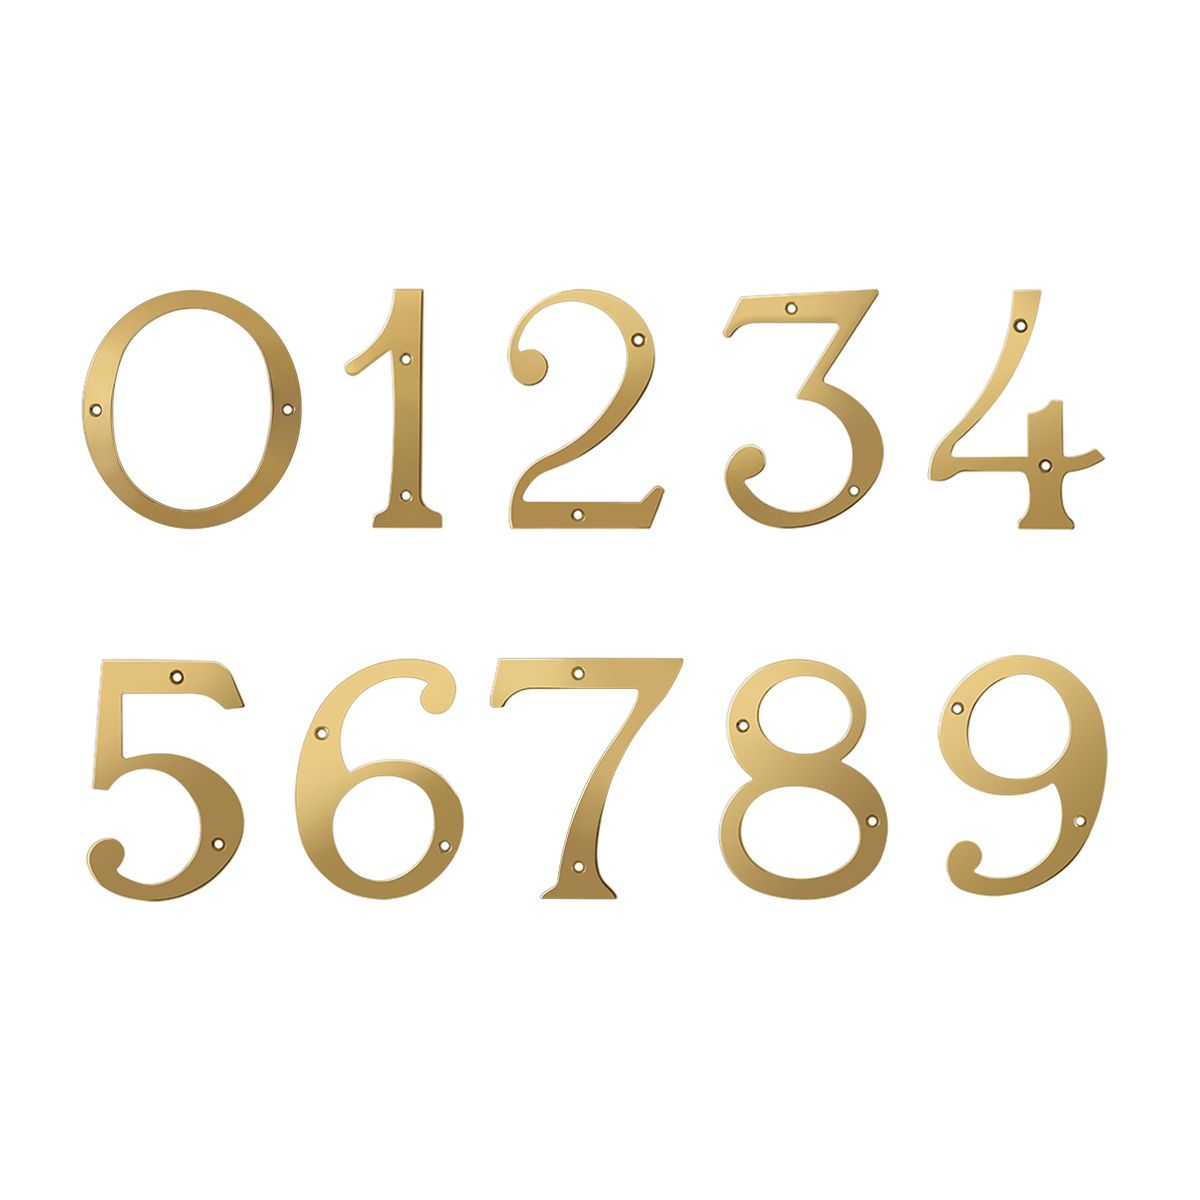 4 House Number Pvd Polished Brass House Numbers Craftsman House Numbers Oil Rubbed Bronze